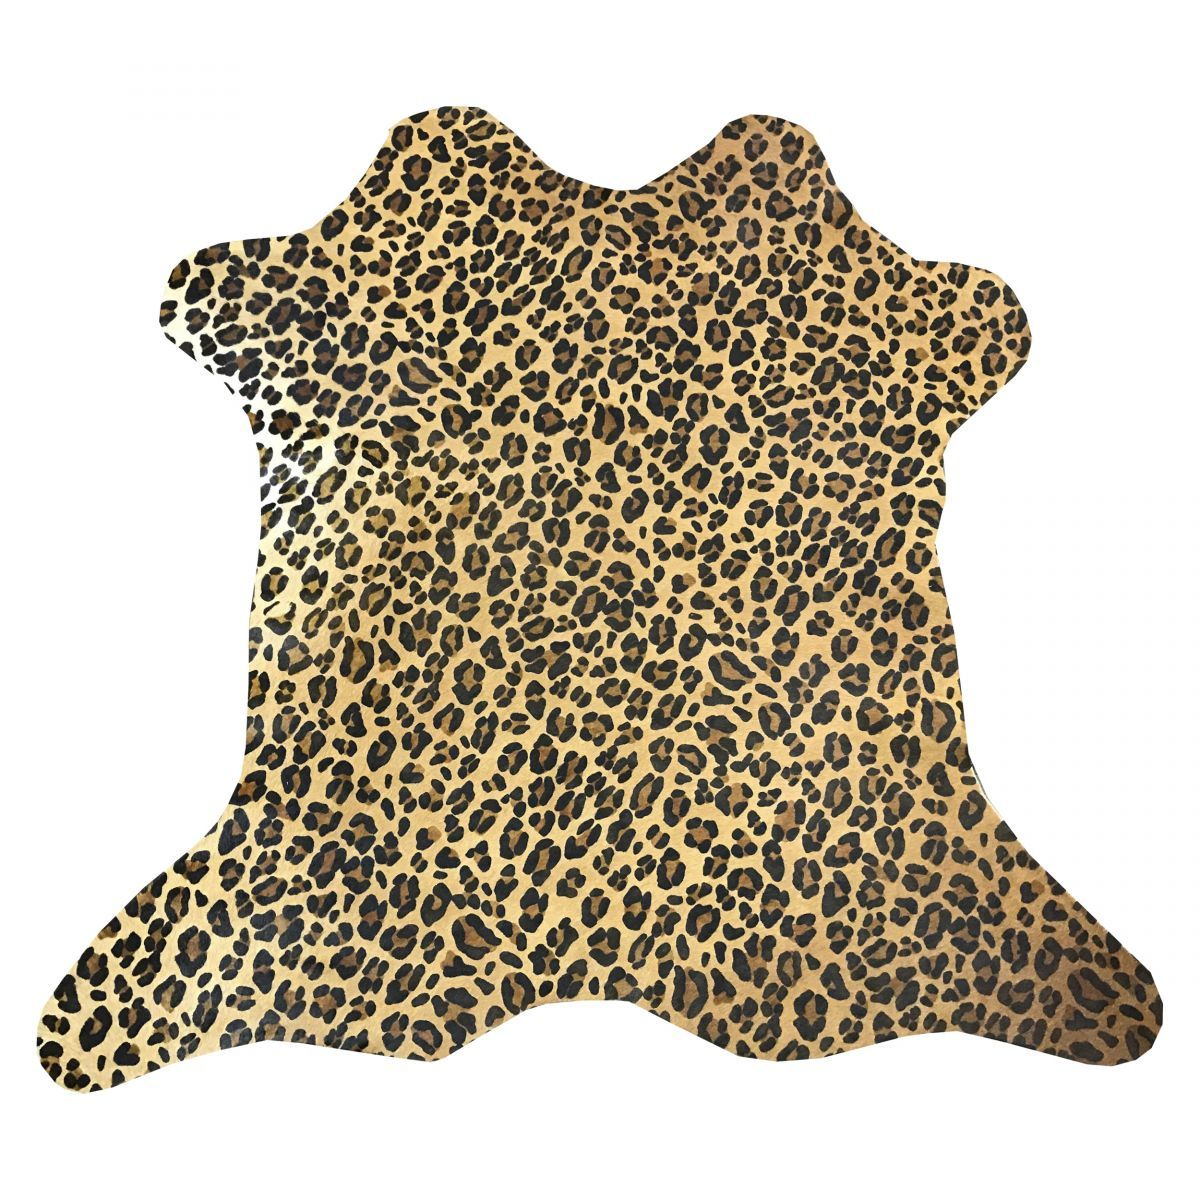 Hair-On Calfskin Print Leopard